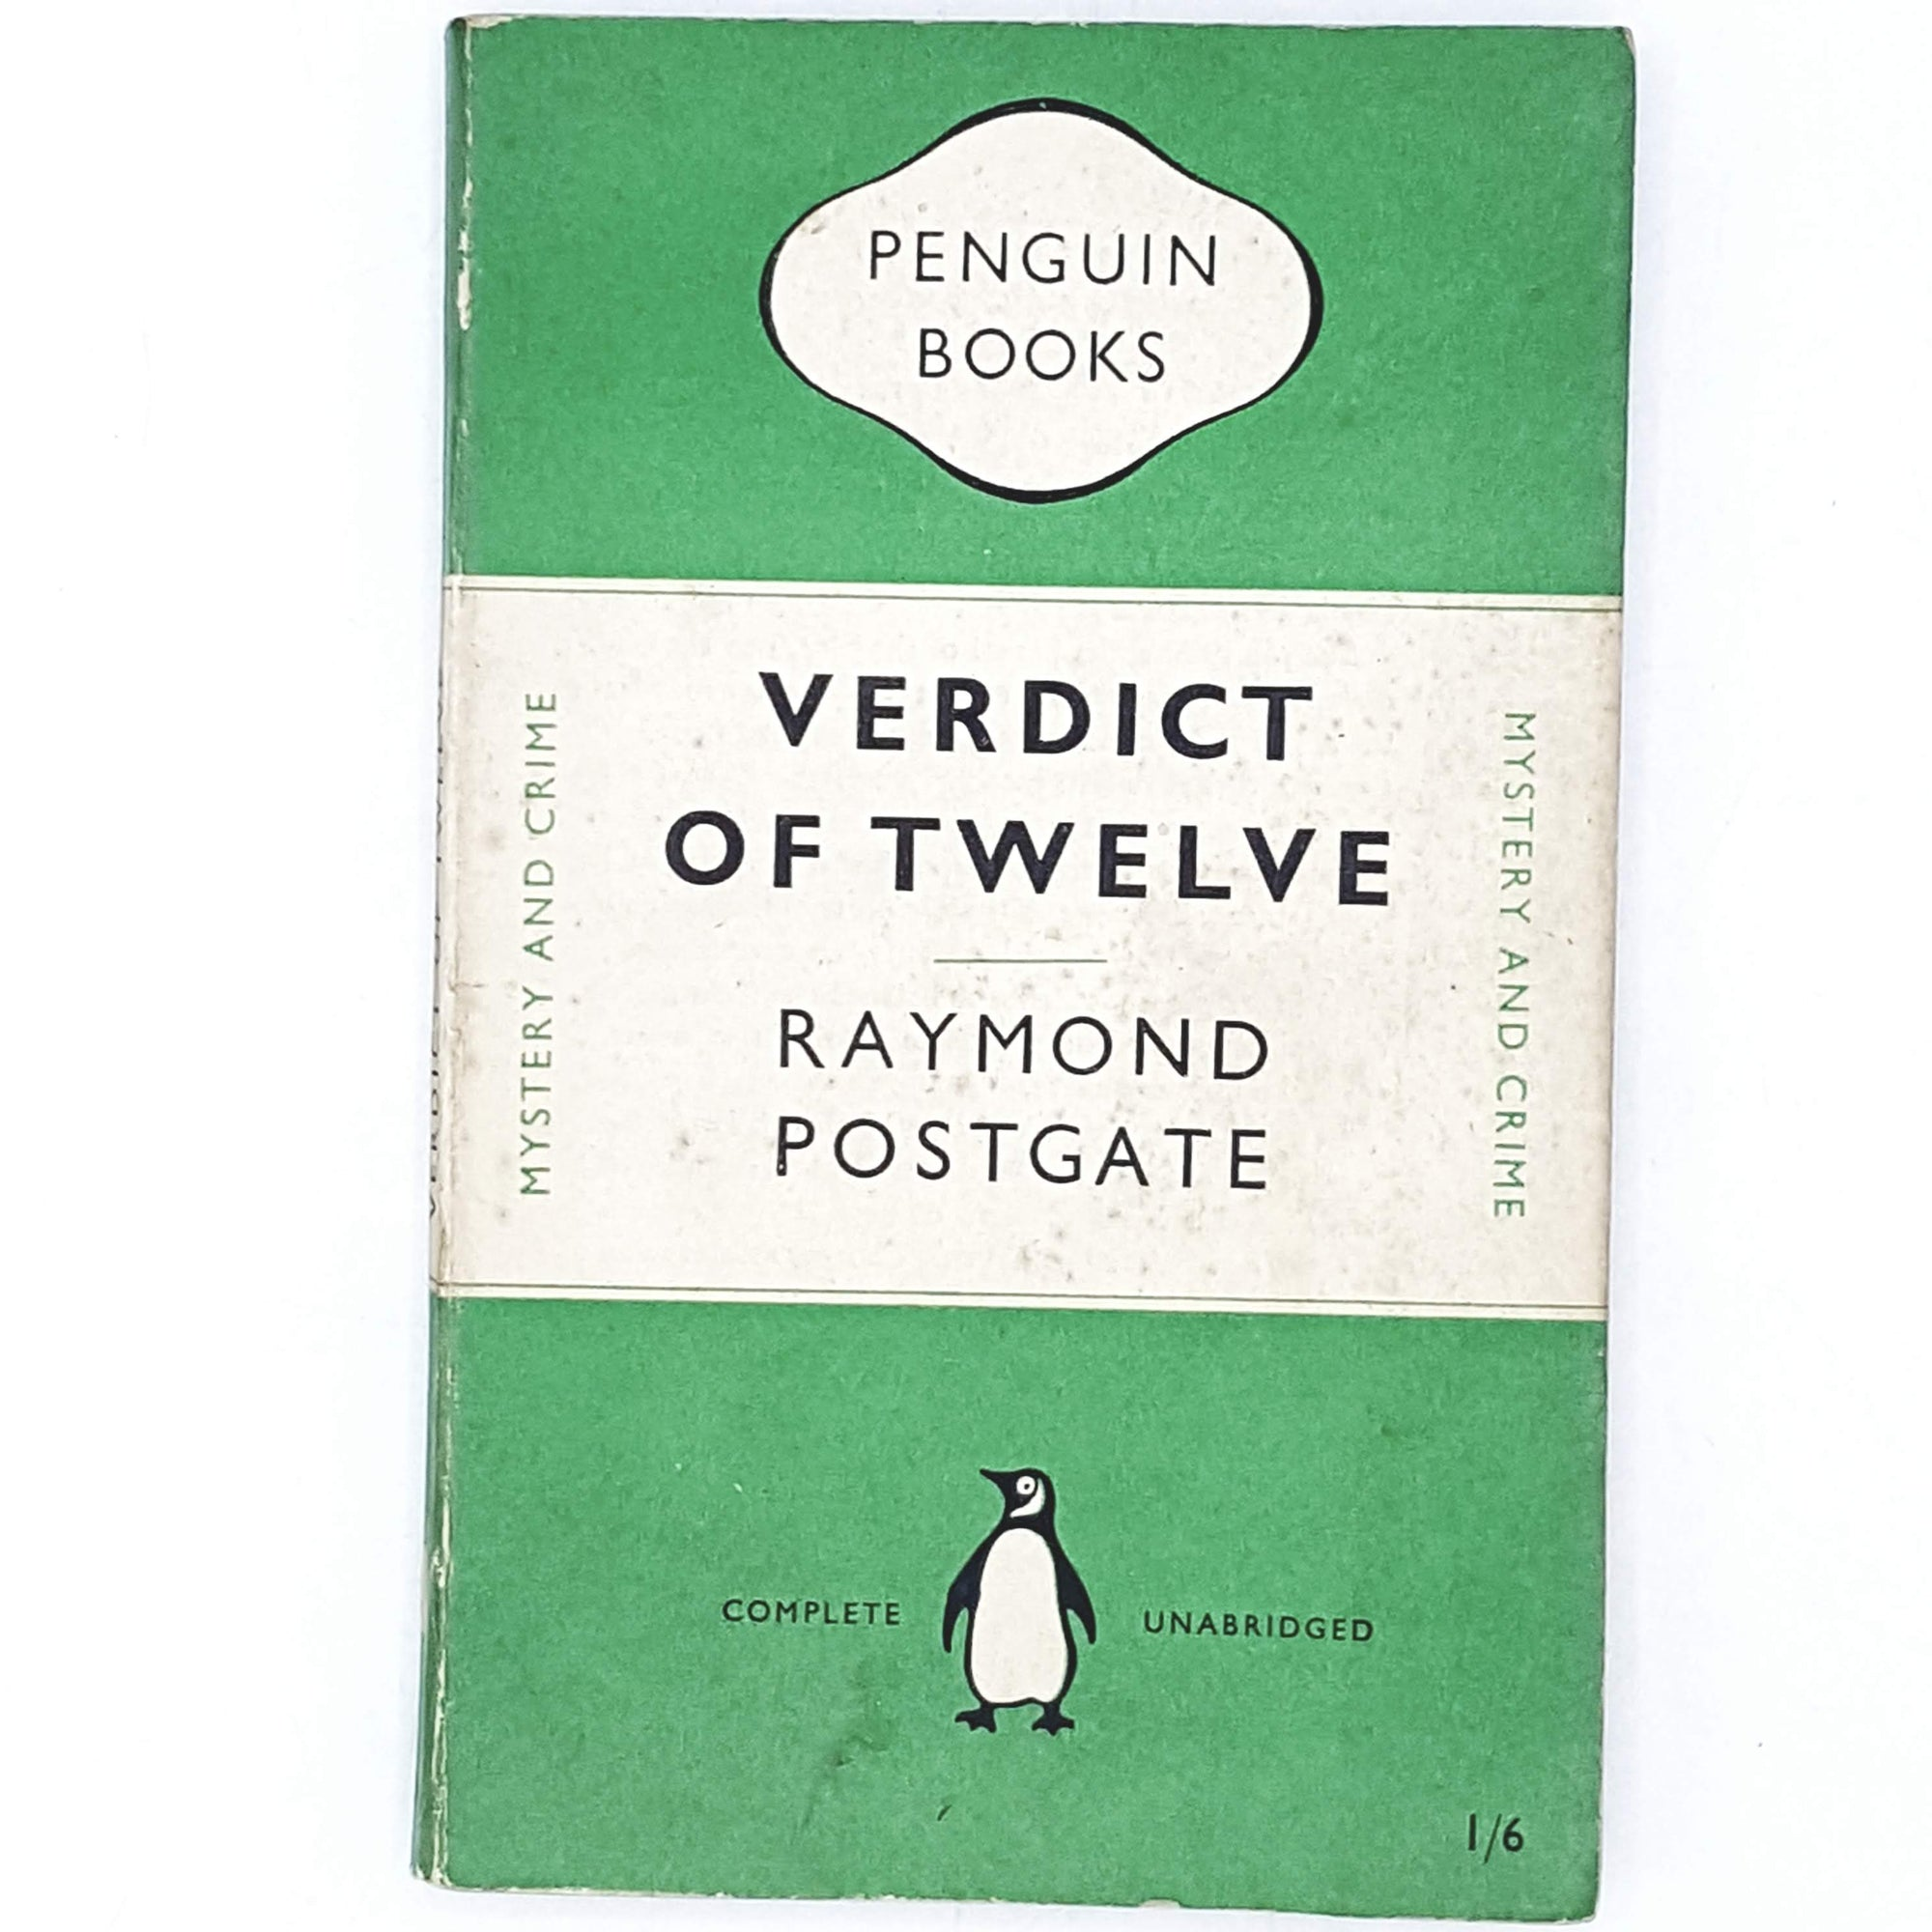 First Edition Verdict of Twelve by Raymond Postgate 1949